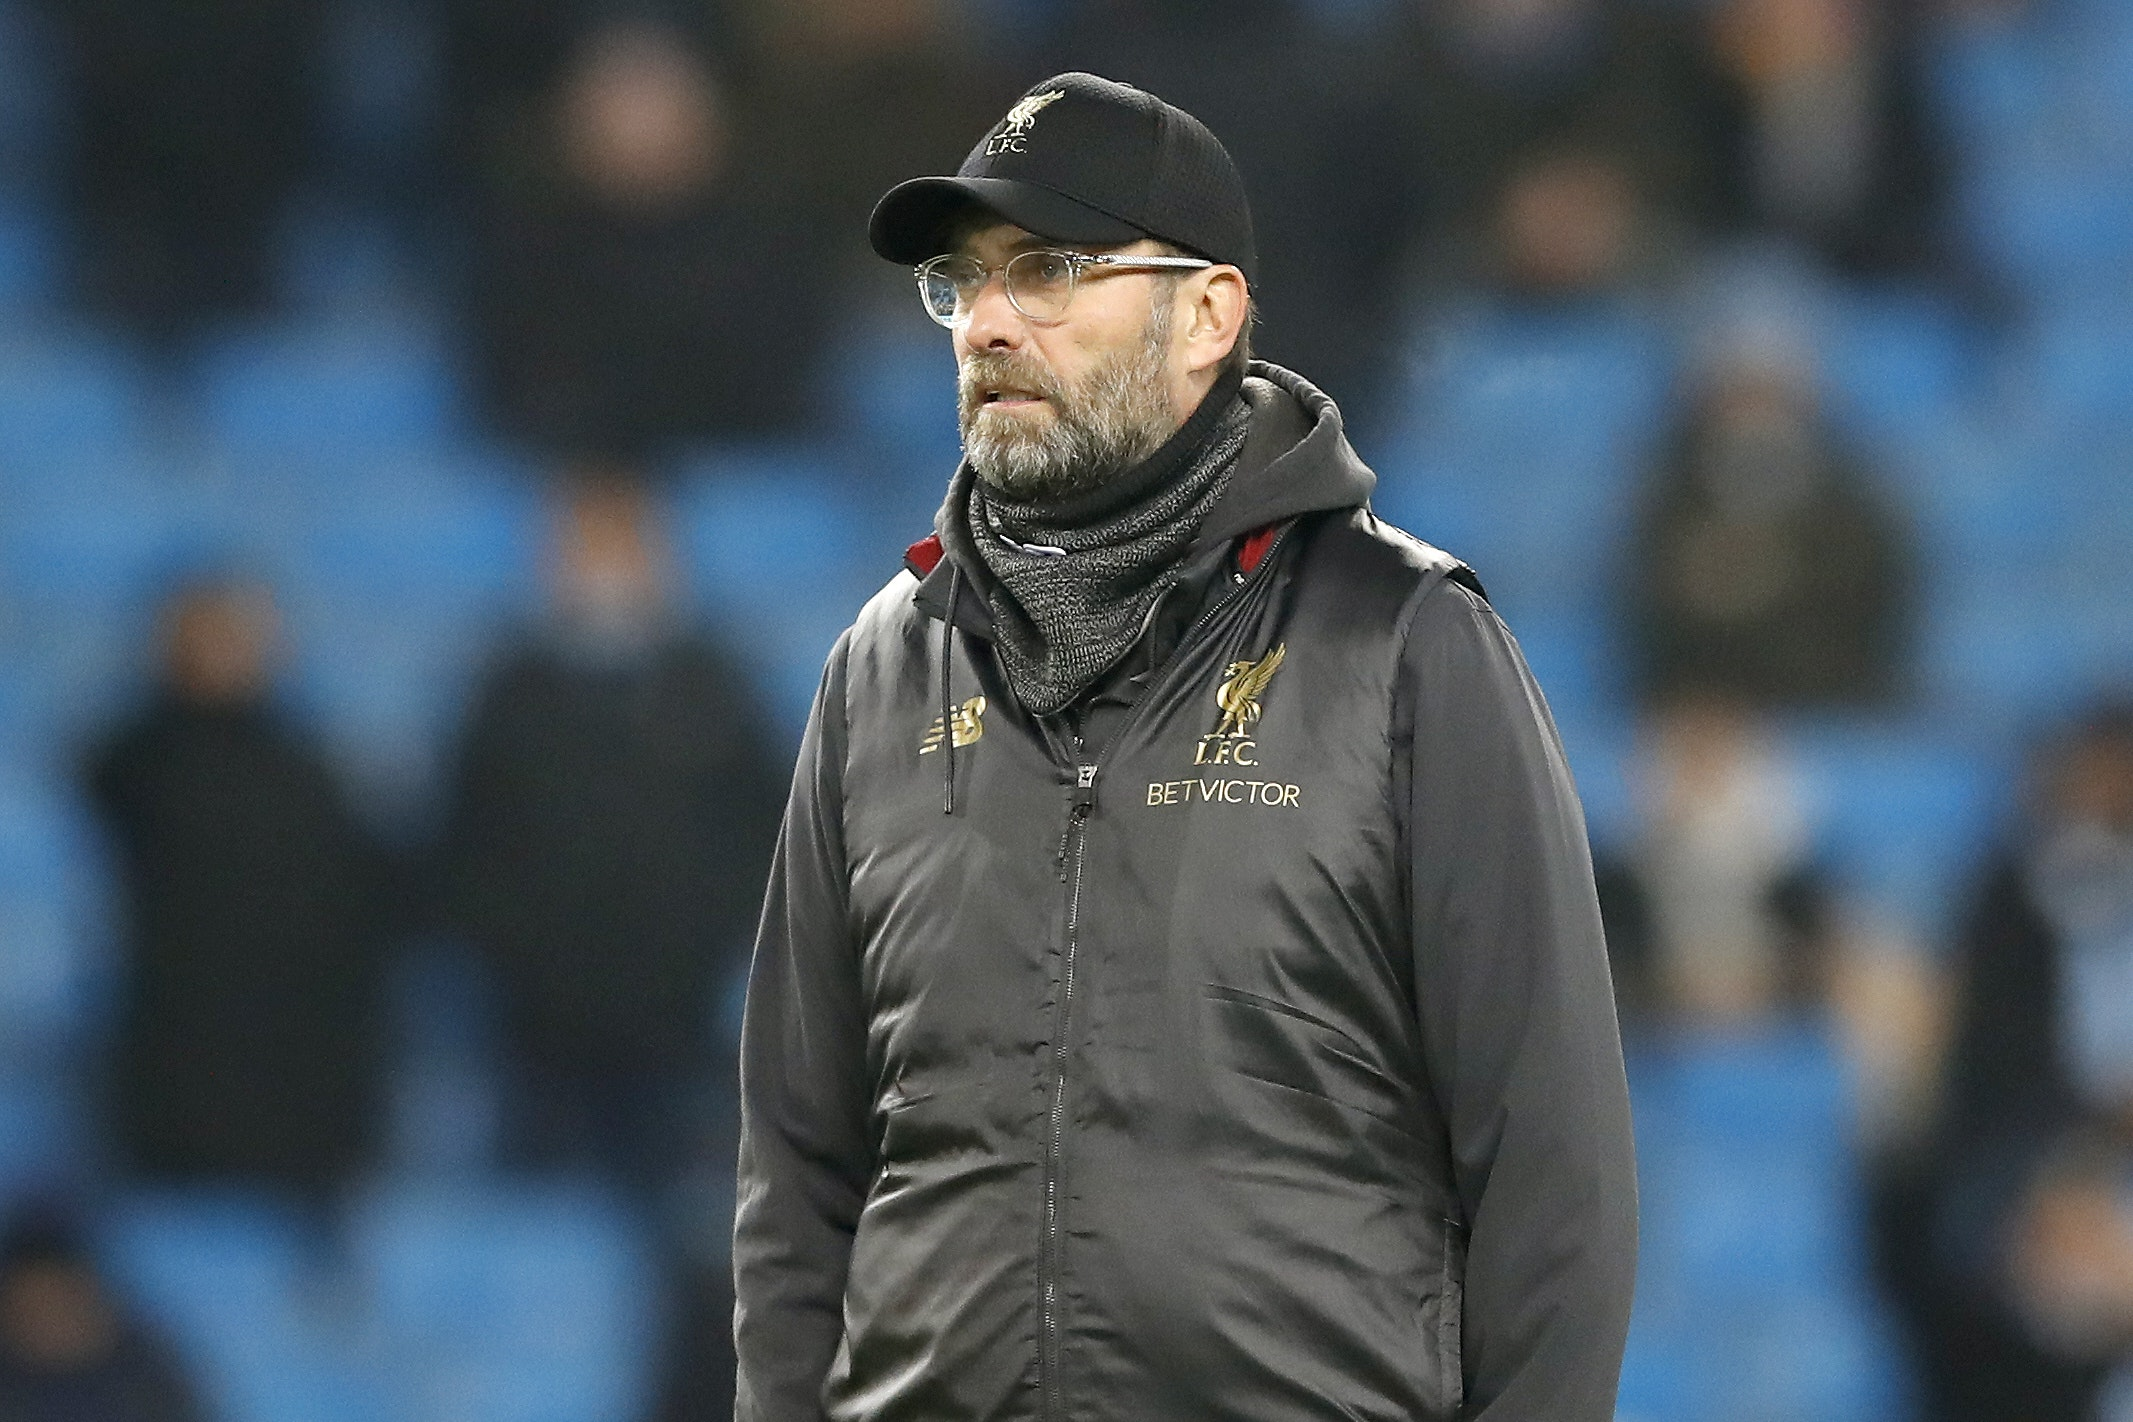 Liverpool manager Jurgen Klopp insists an FA Cup exit does not give them an advantage over their title rivals